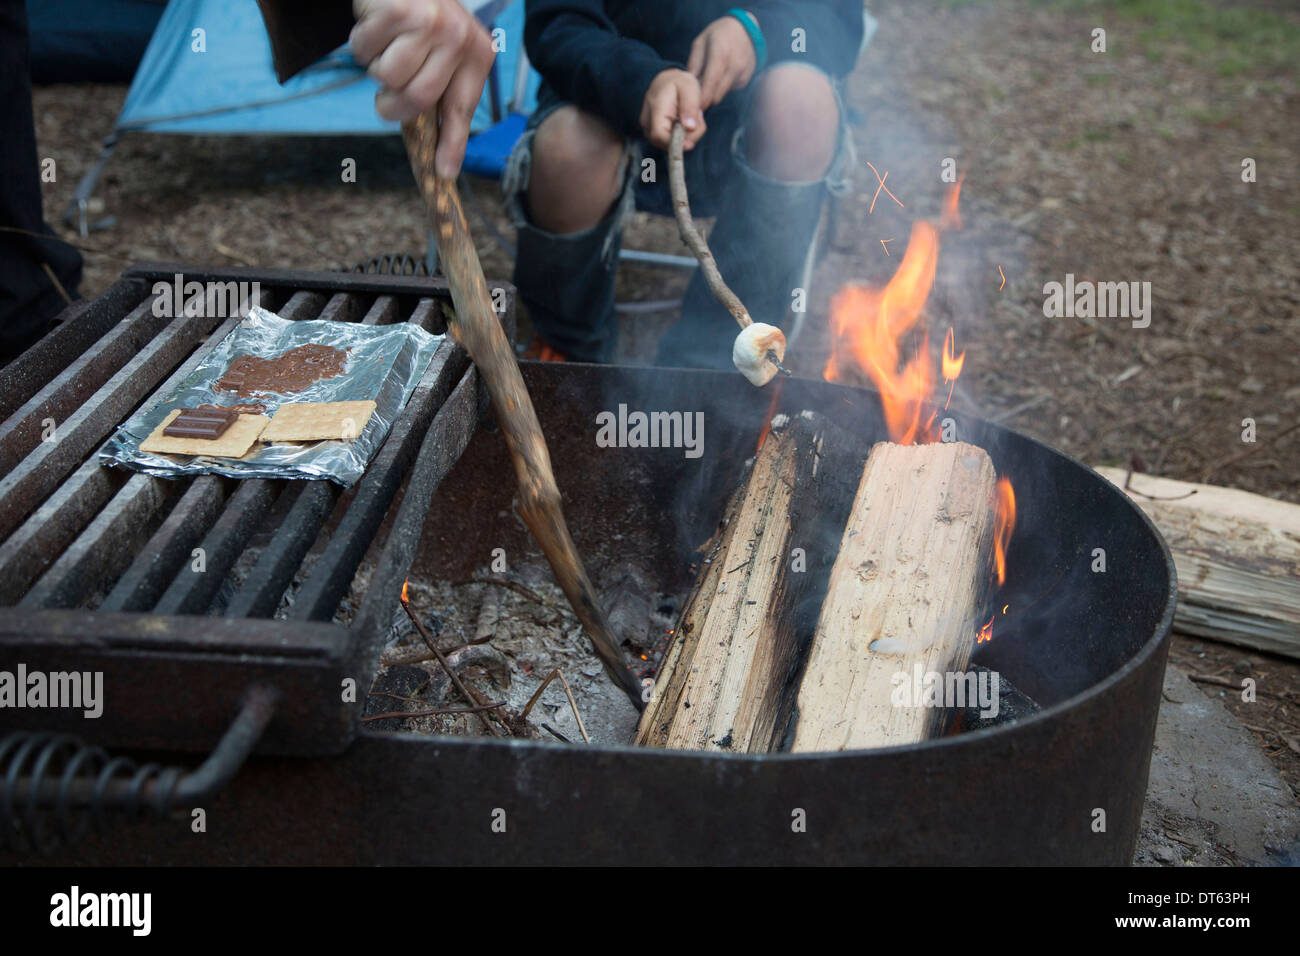 Two people having barbeque - Stock Image